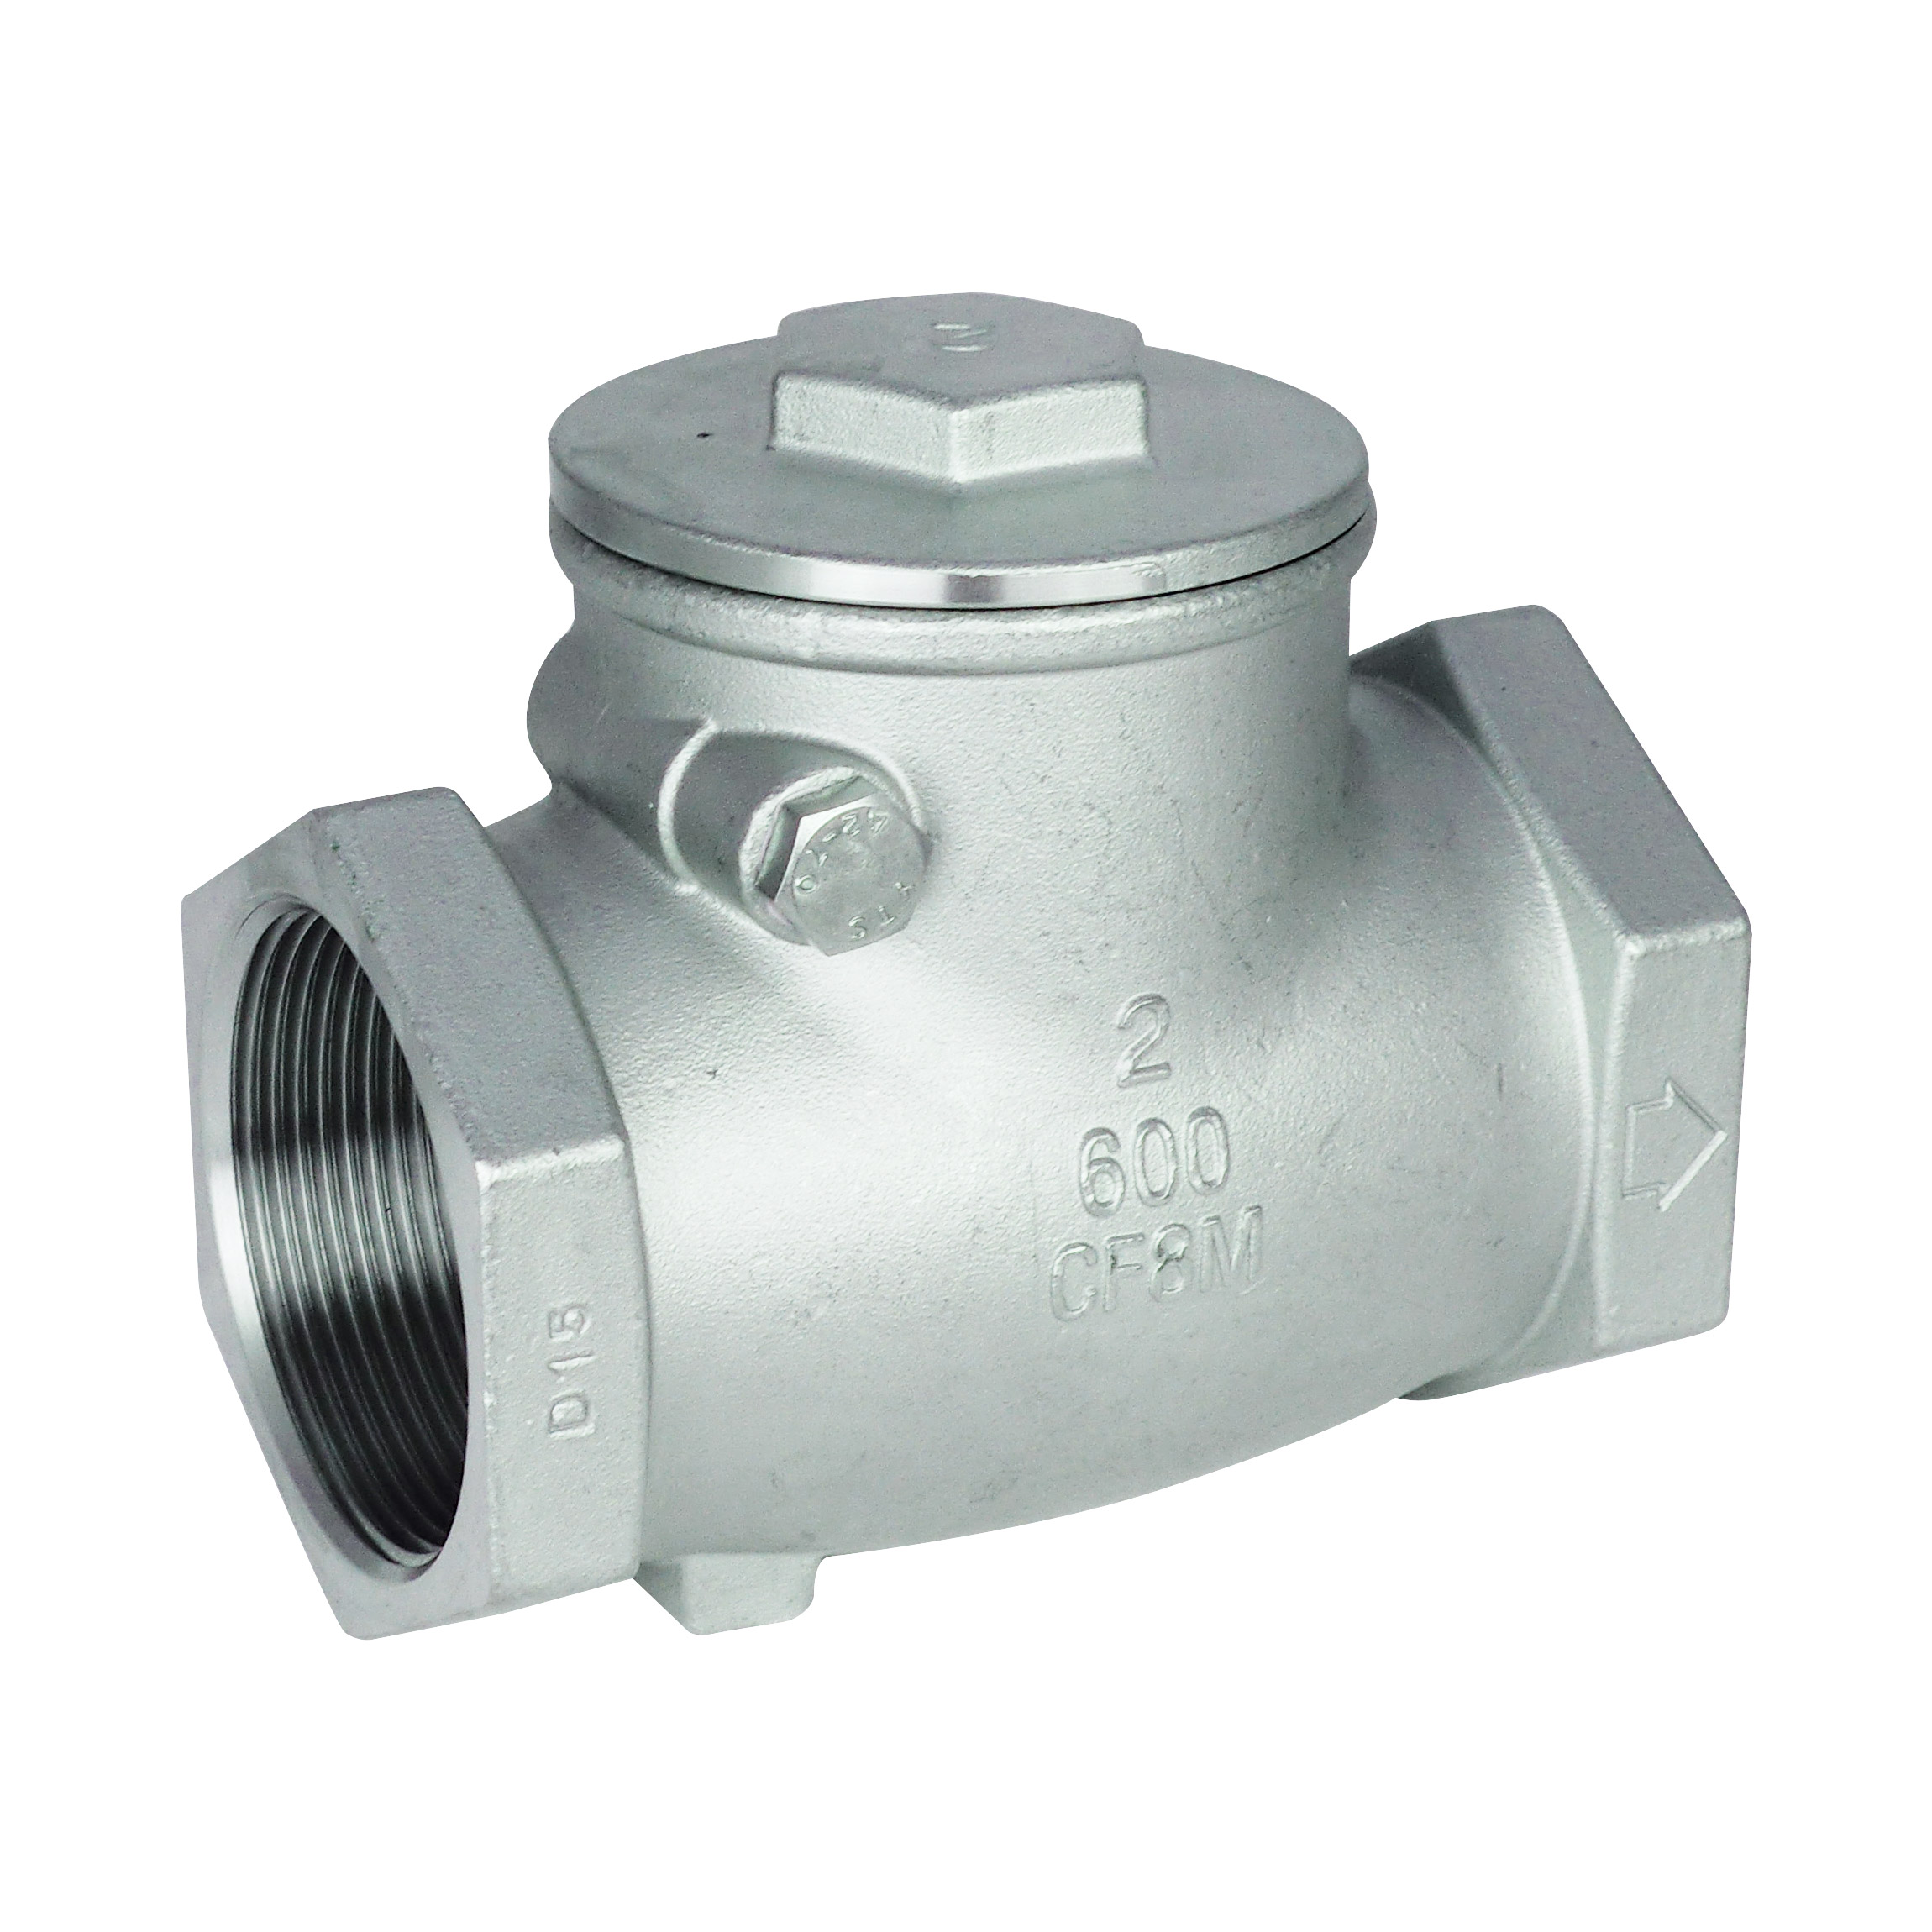 Industrial Check Valve, Full Port Check Valves Manufacturer, Check Valves Supplier